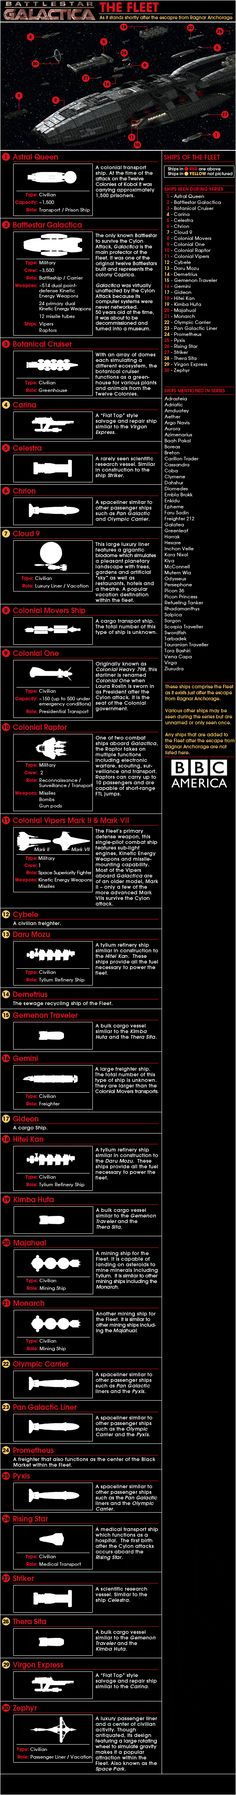 Battlestar Galactica Infographic: Ships of the Colonial Fleet #battlestargalactica #ragtagfugitivefleet #ronaldbmoore